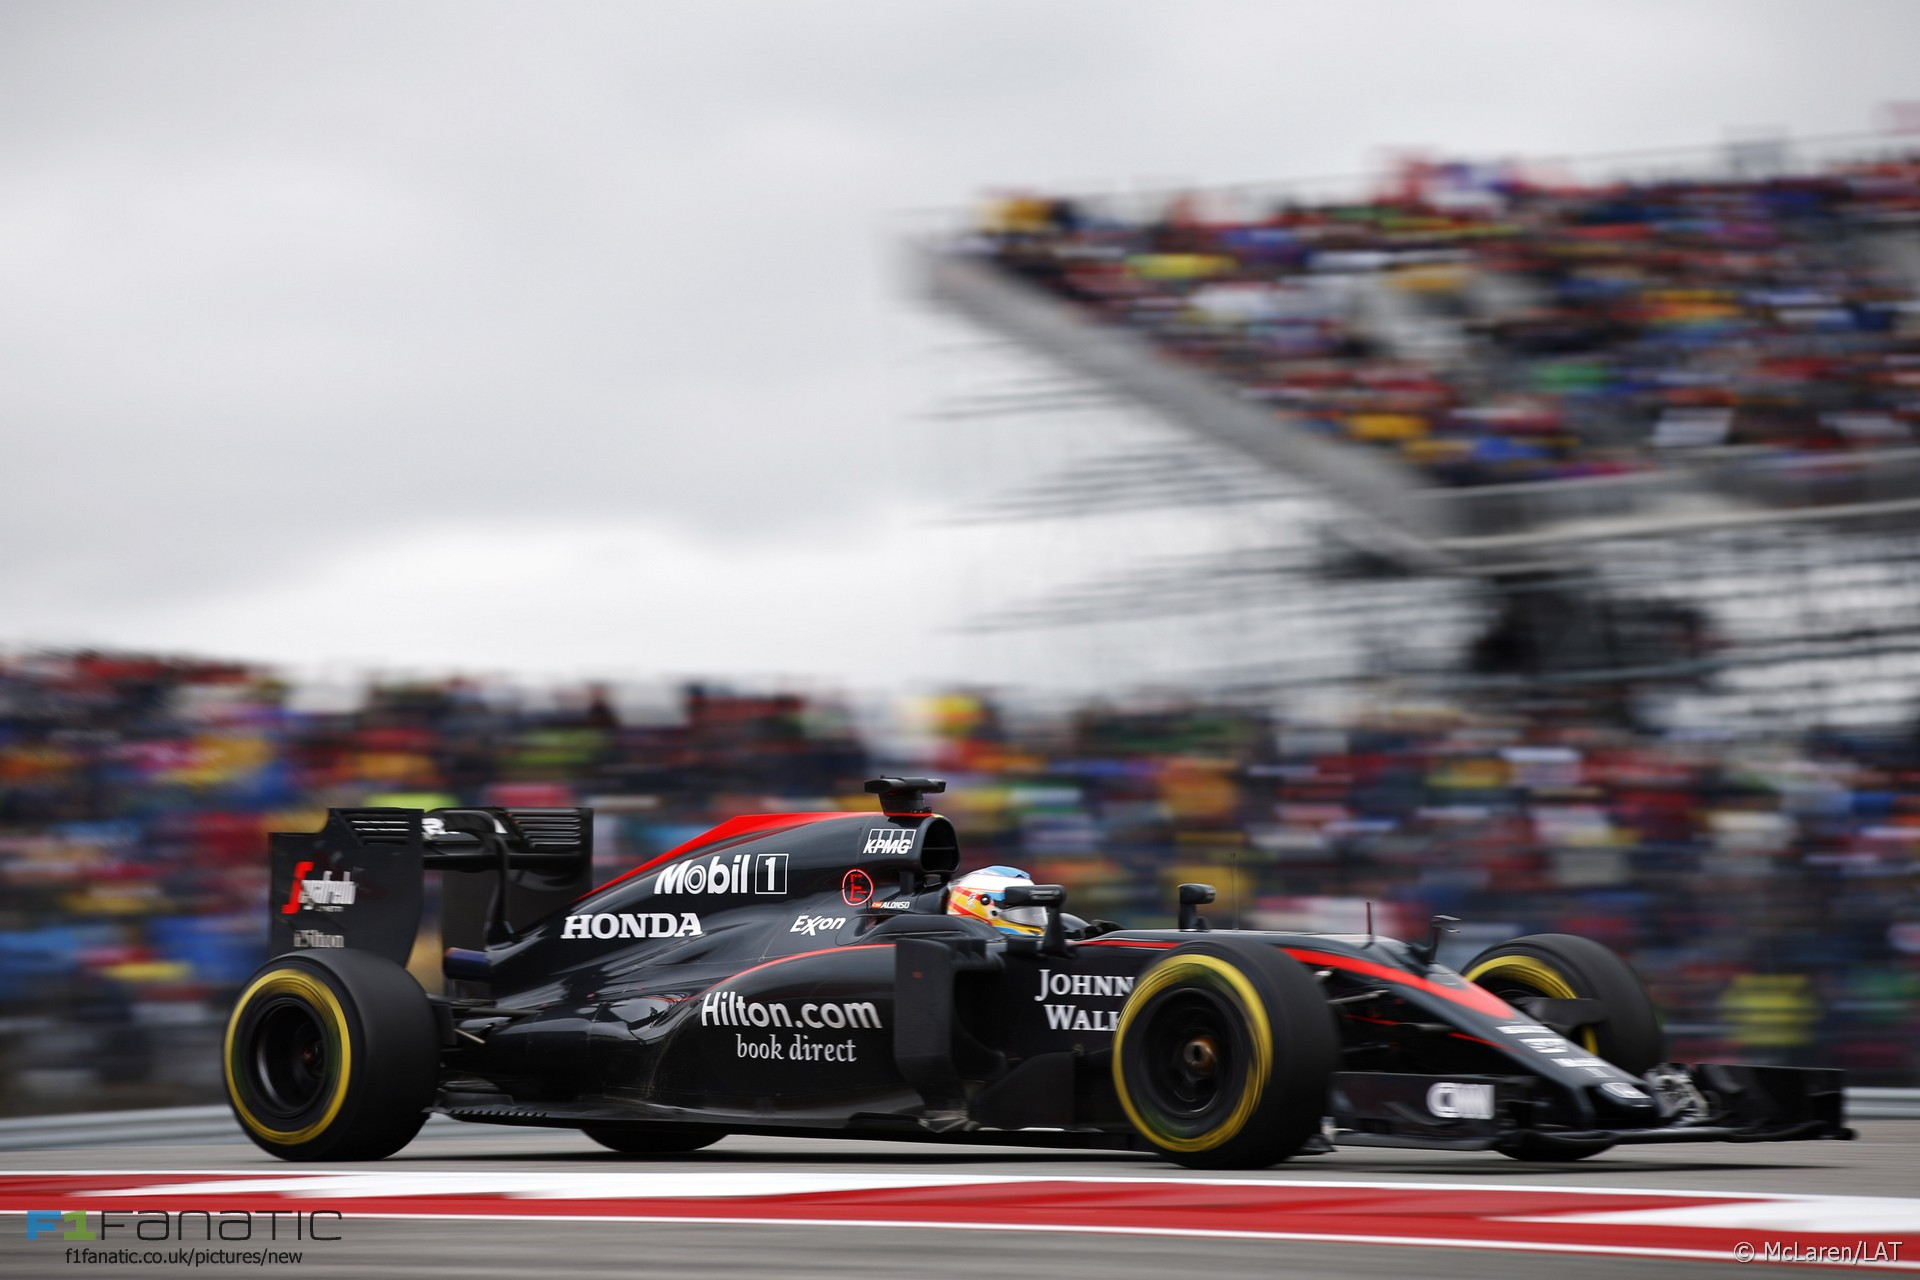 fernando alonso mclaren circuit of the americas 2015 f1 fanatic. Black Bedroom Furniture Sets. Home Design Ideas